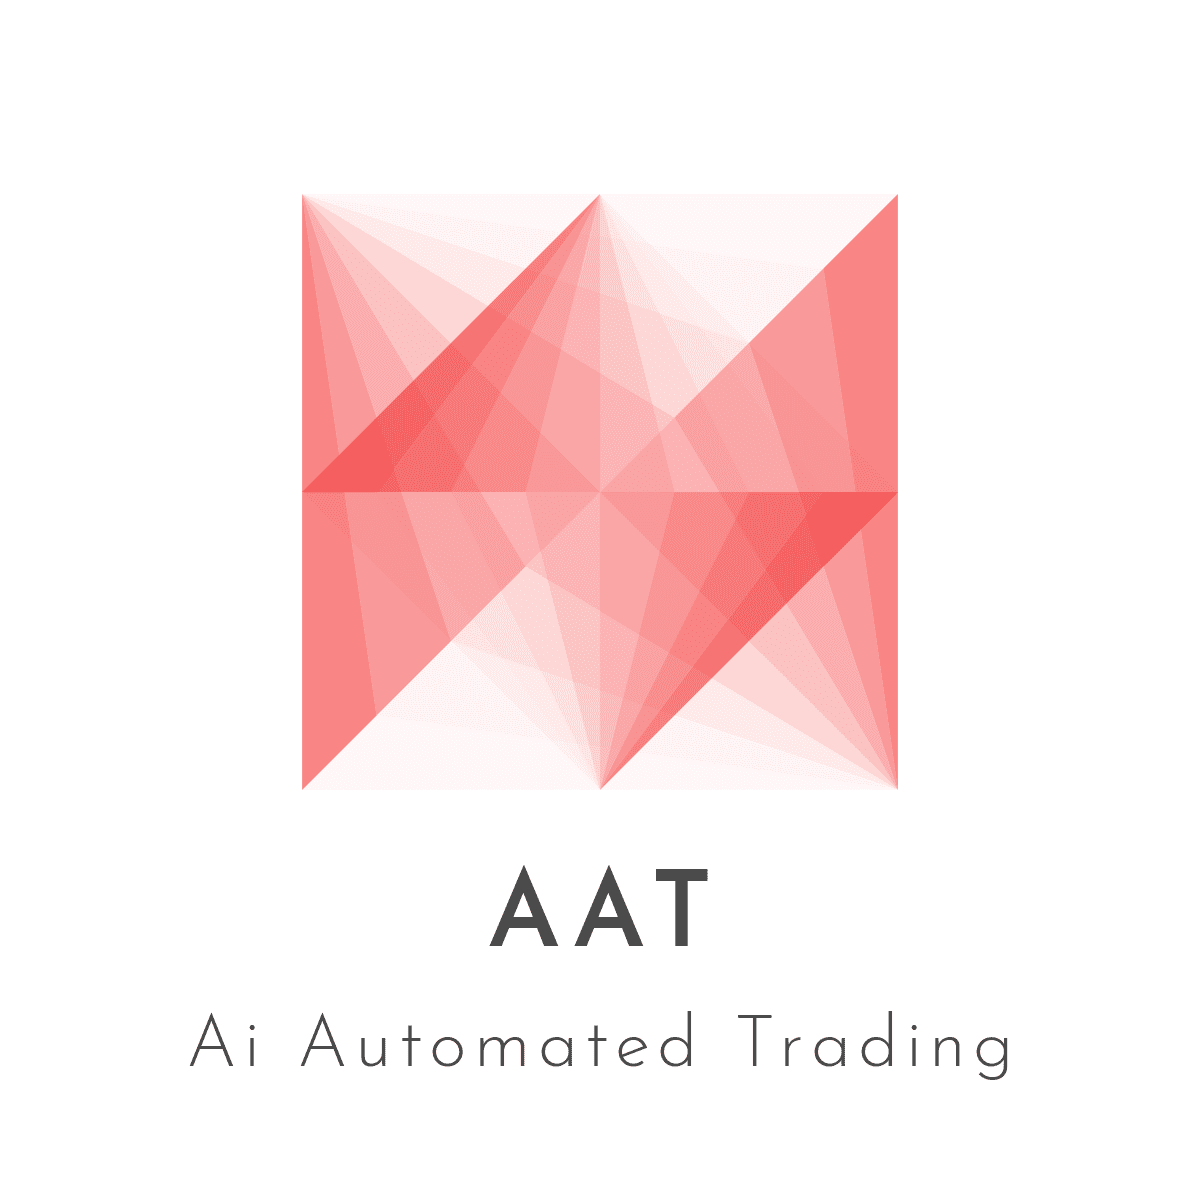 AAT_Phase 2. add upper & lower limit price